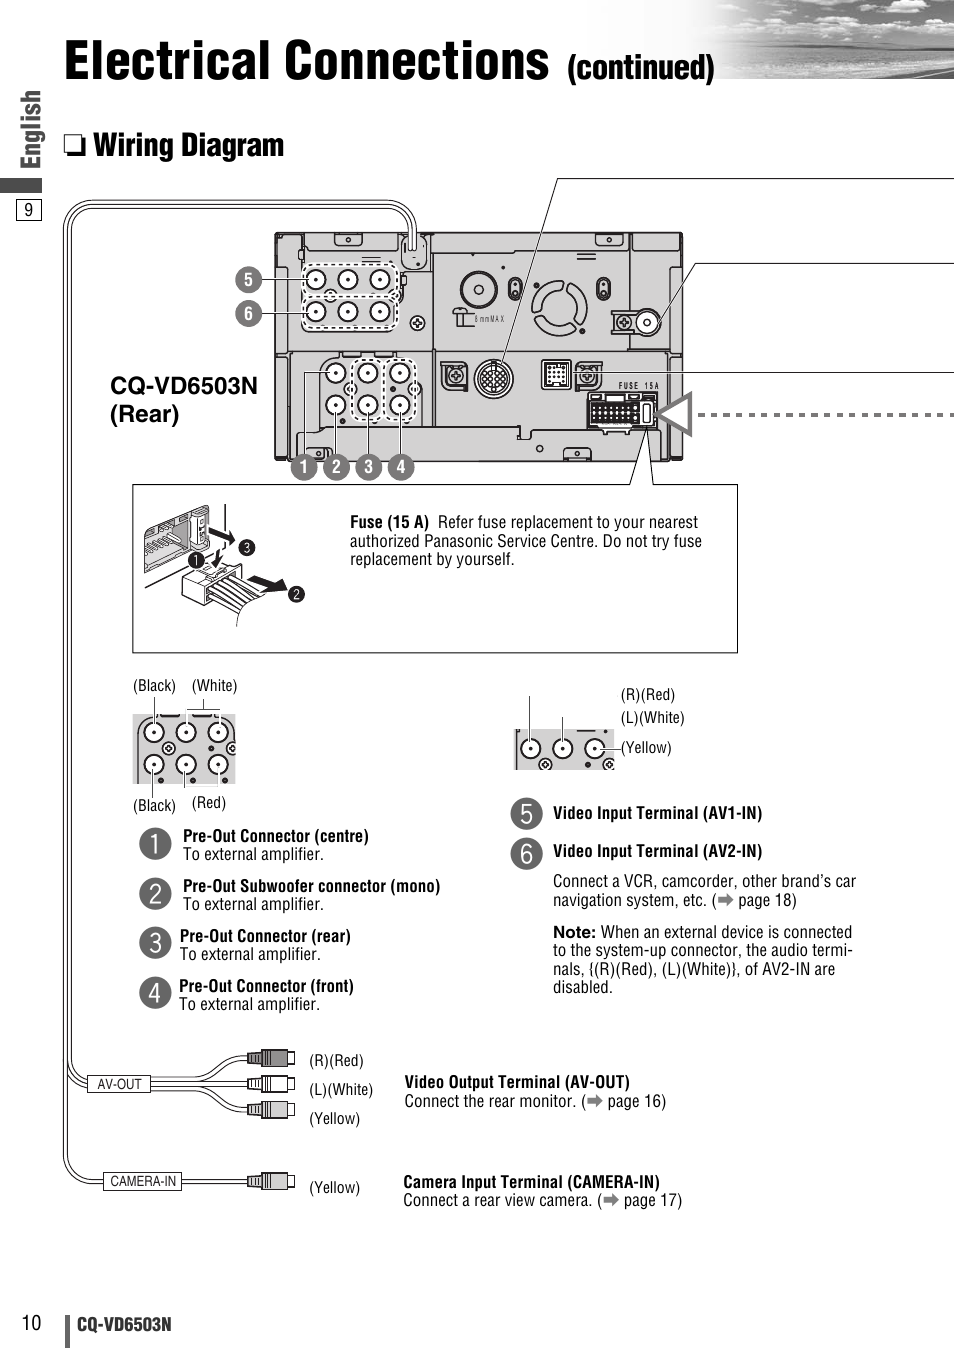 Electrical Connections  Continued   Wiring Diagram